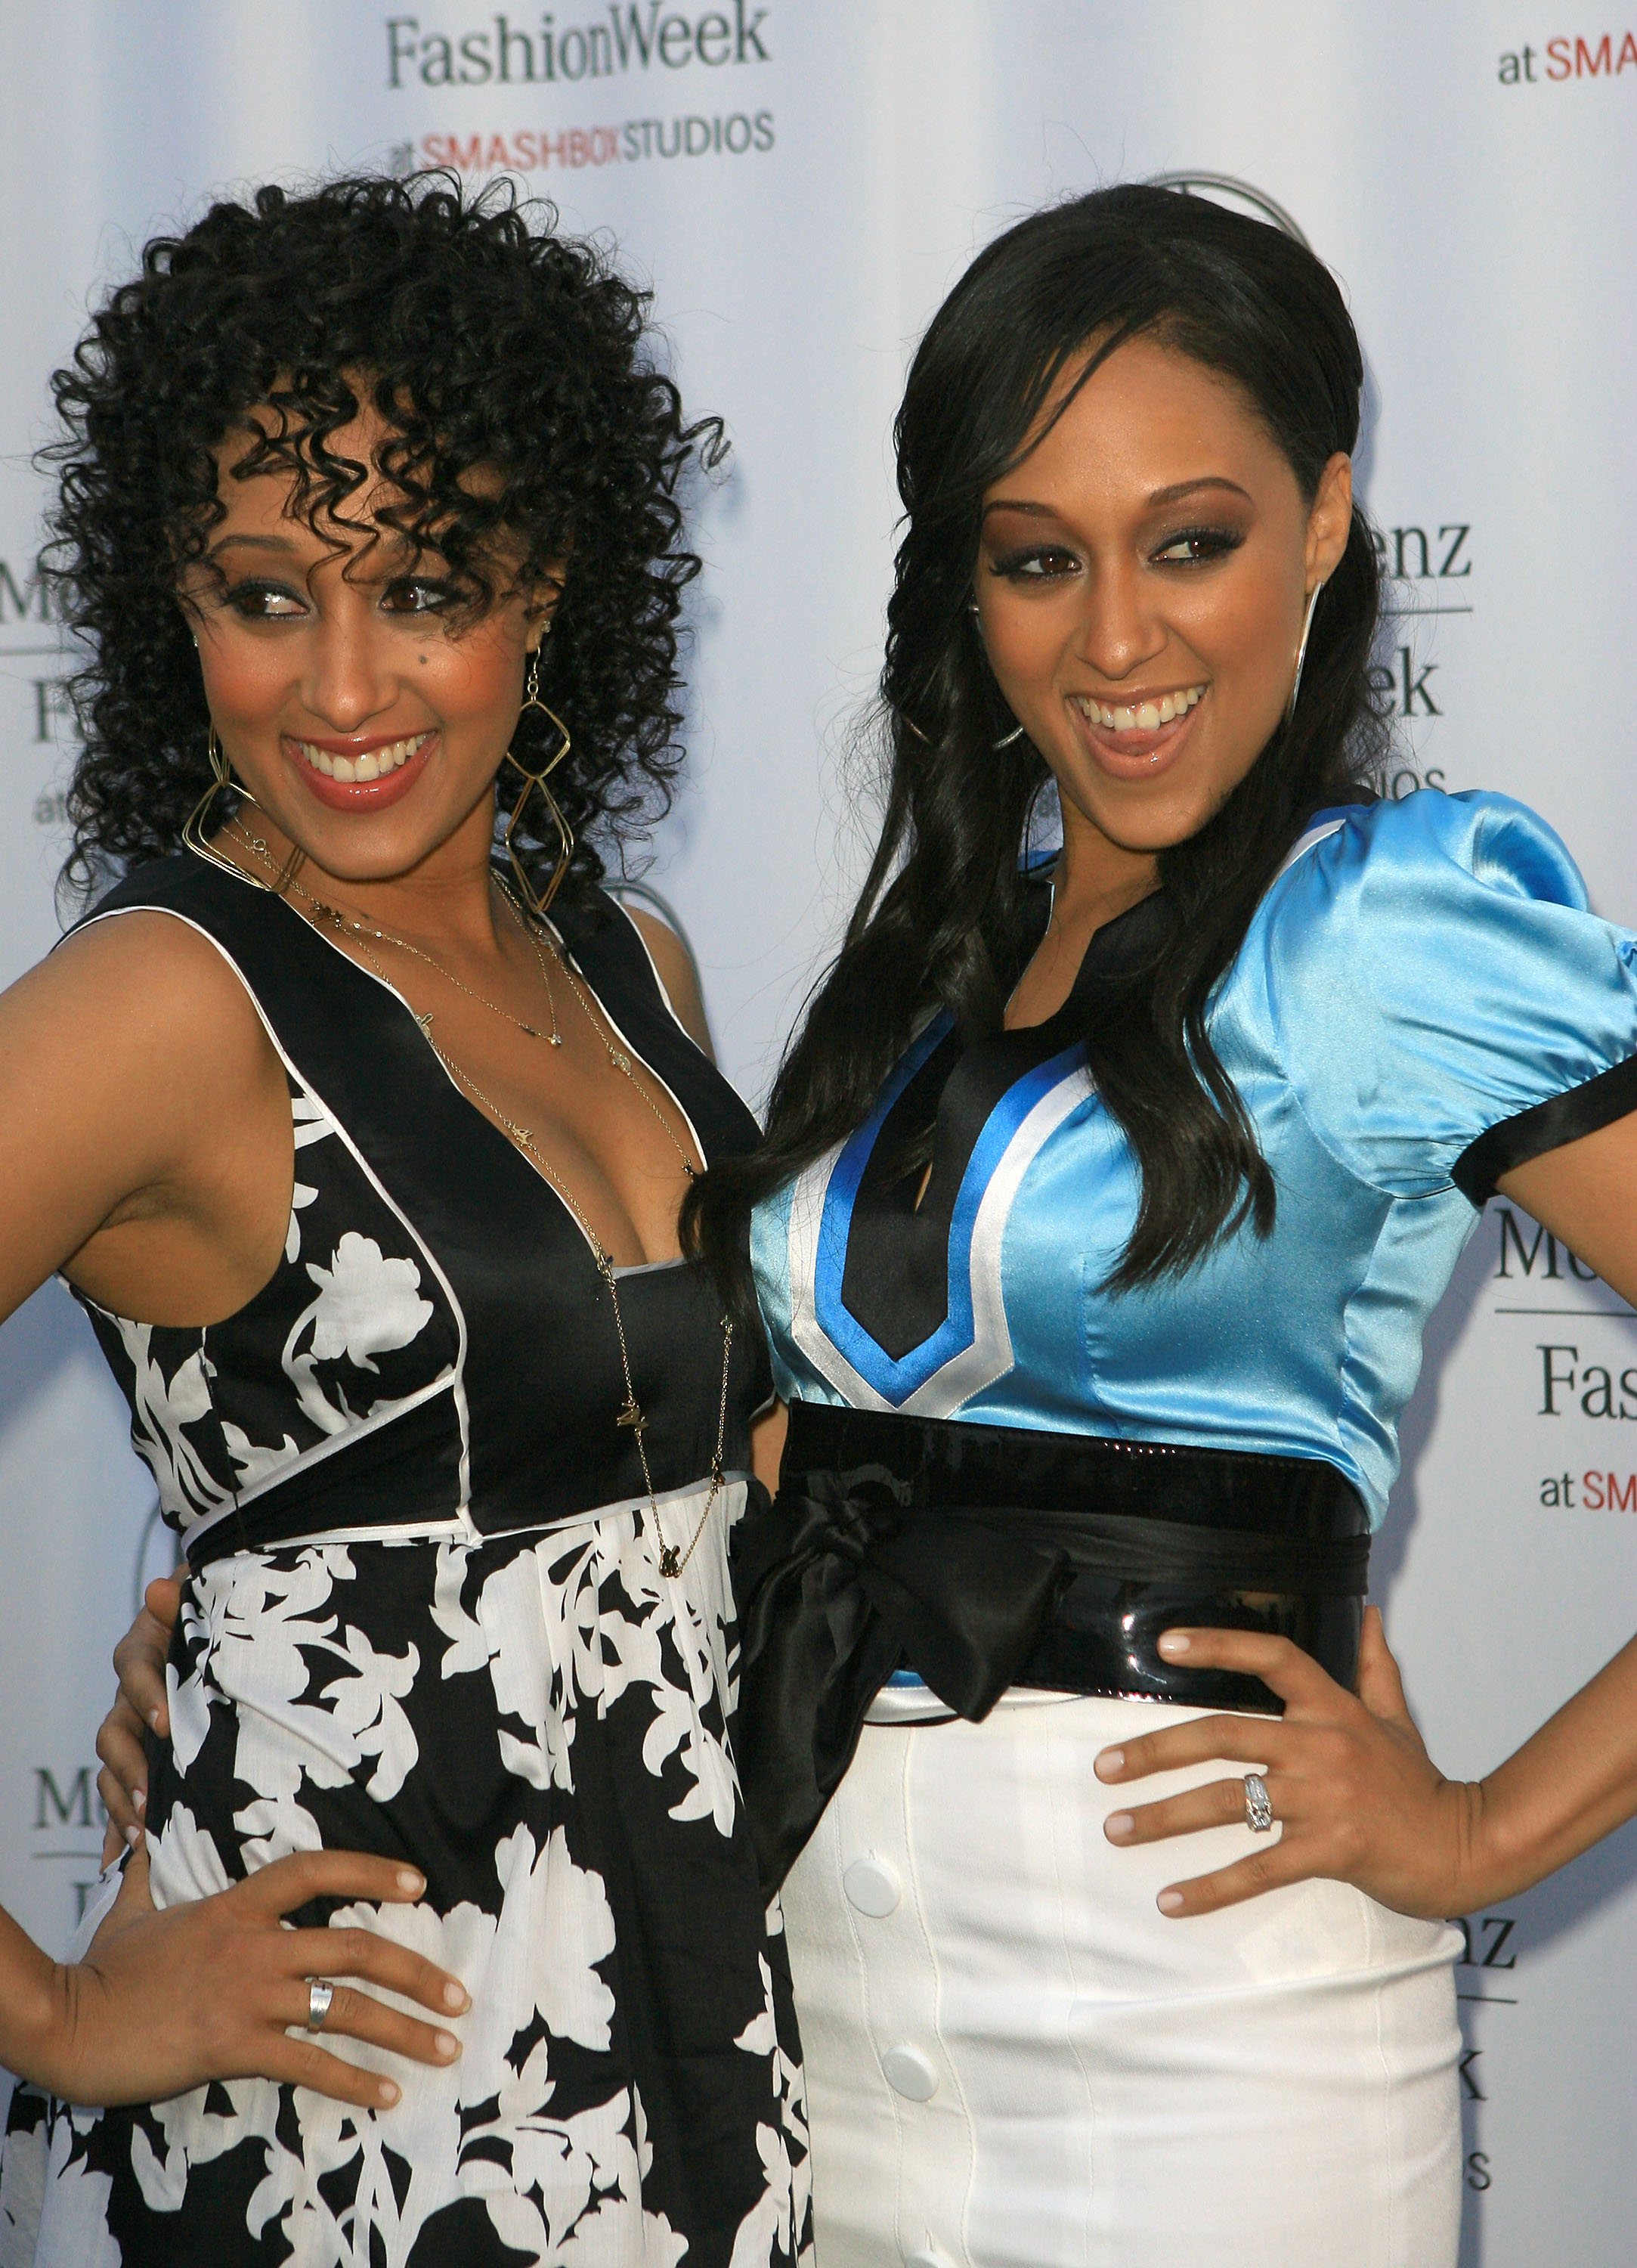 Actresses Tamera Mowry and Tia Mowry attends Mercedes Benz Fashion Week held at Smashbox Studios on March 18, 2007 in Culver City, California. (Photo by Katy Winn/Getty Images)